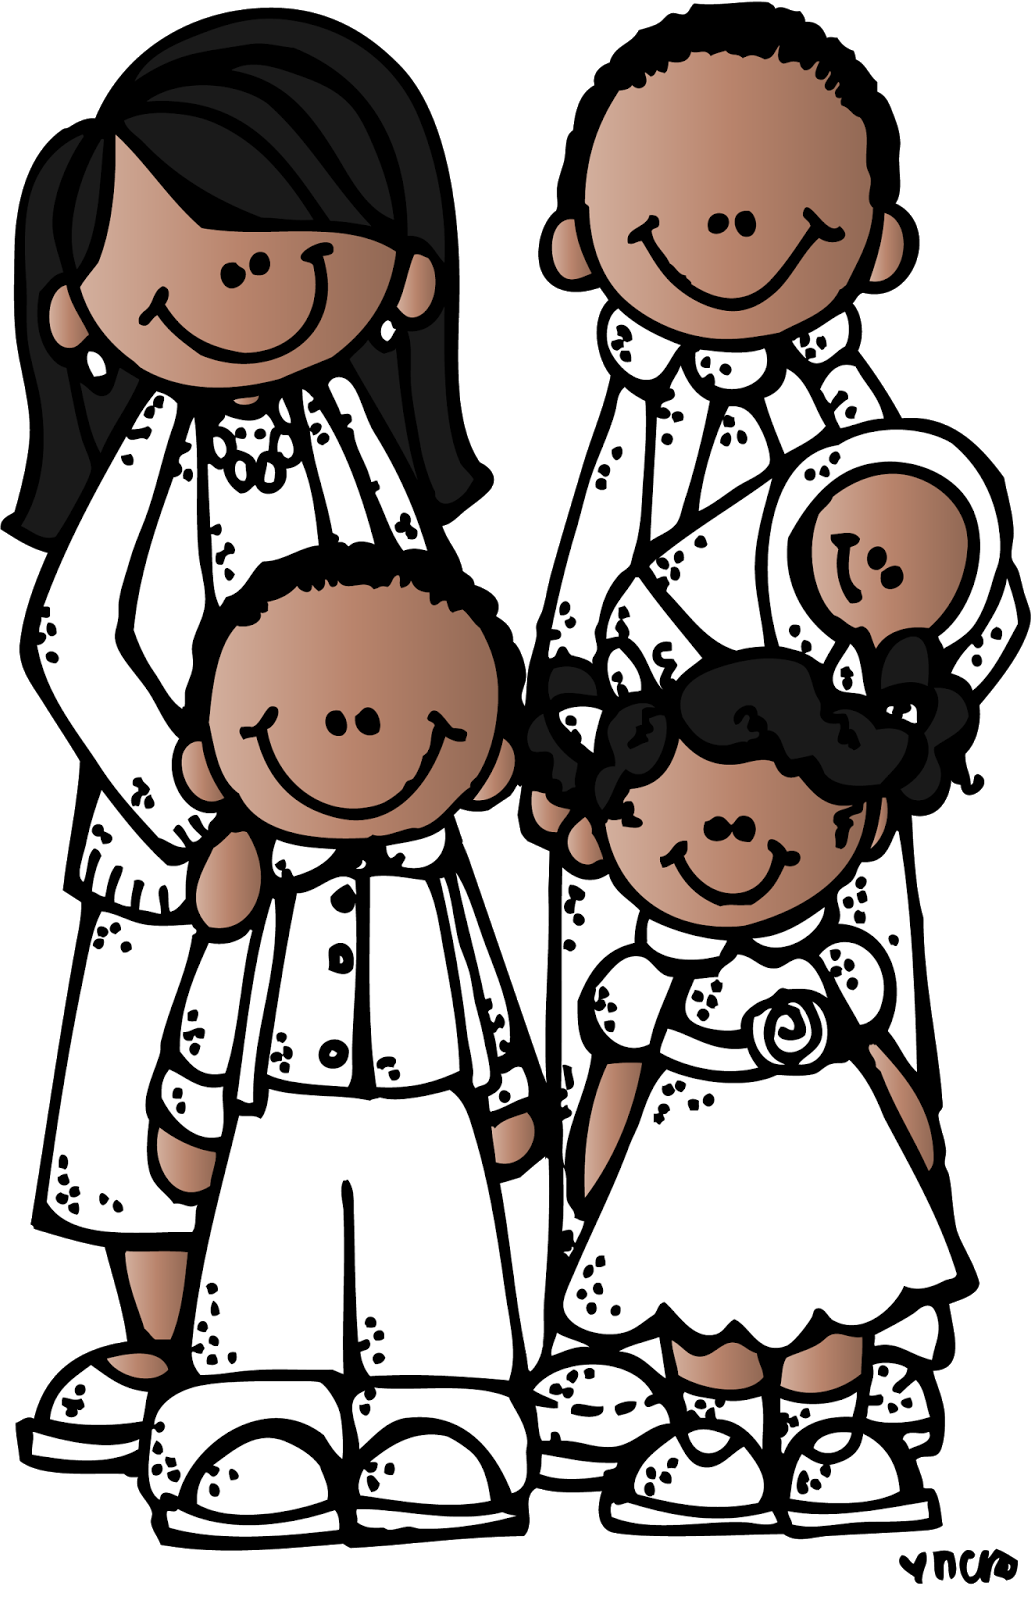 graphic free download Lds family clipart black and white. Image result for melonheadz